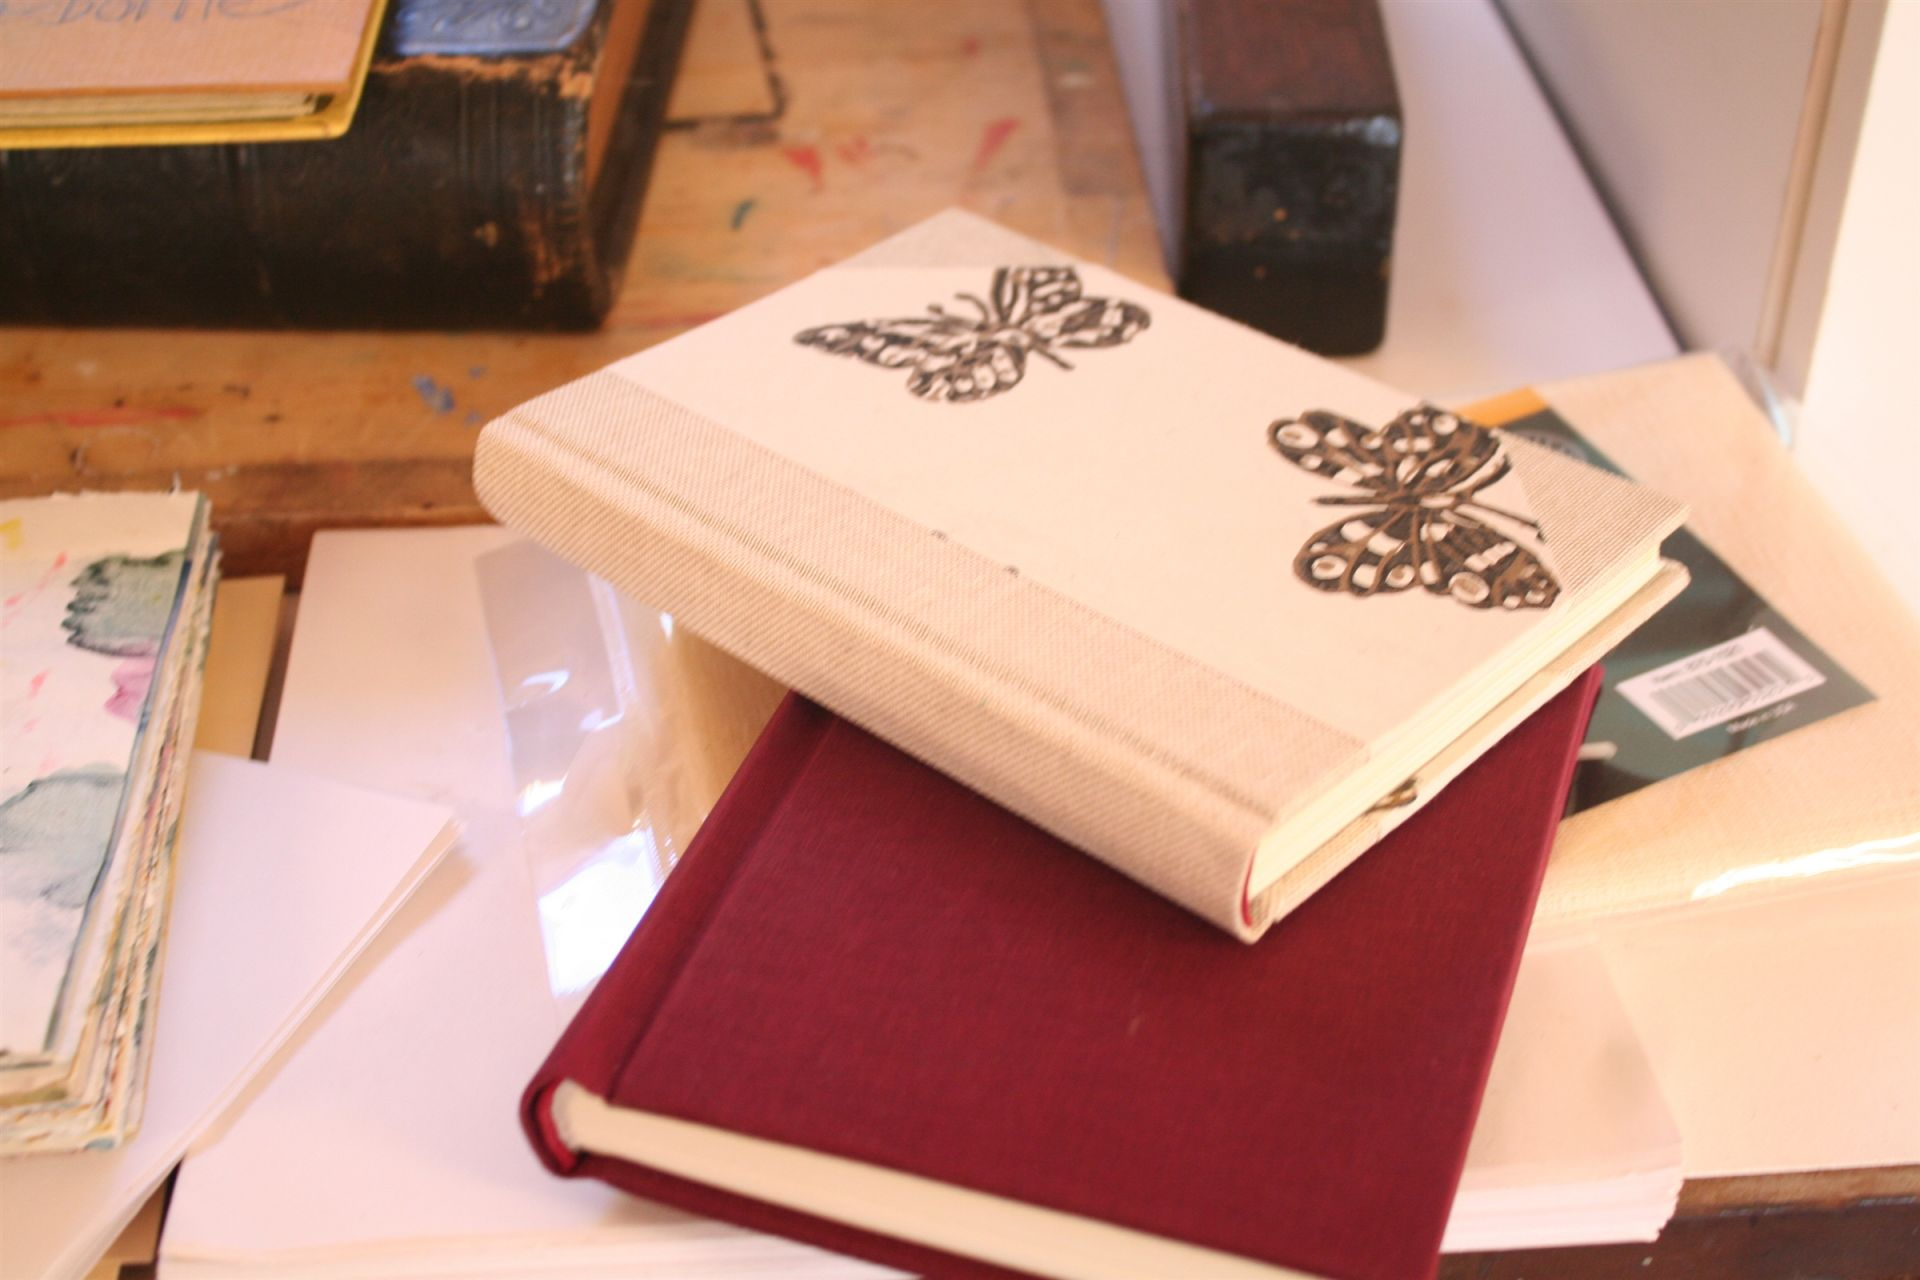 Some finished bookbinding projects